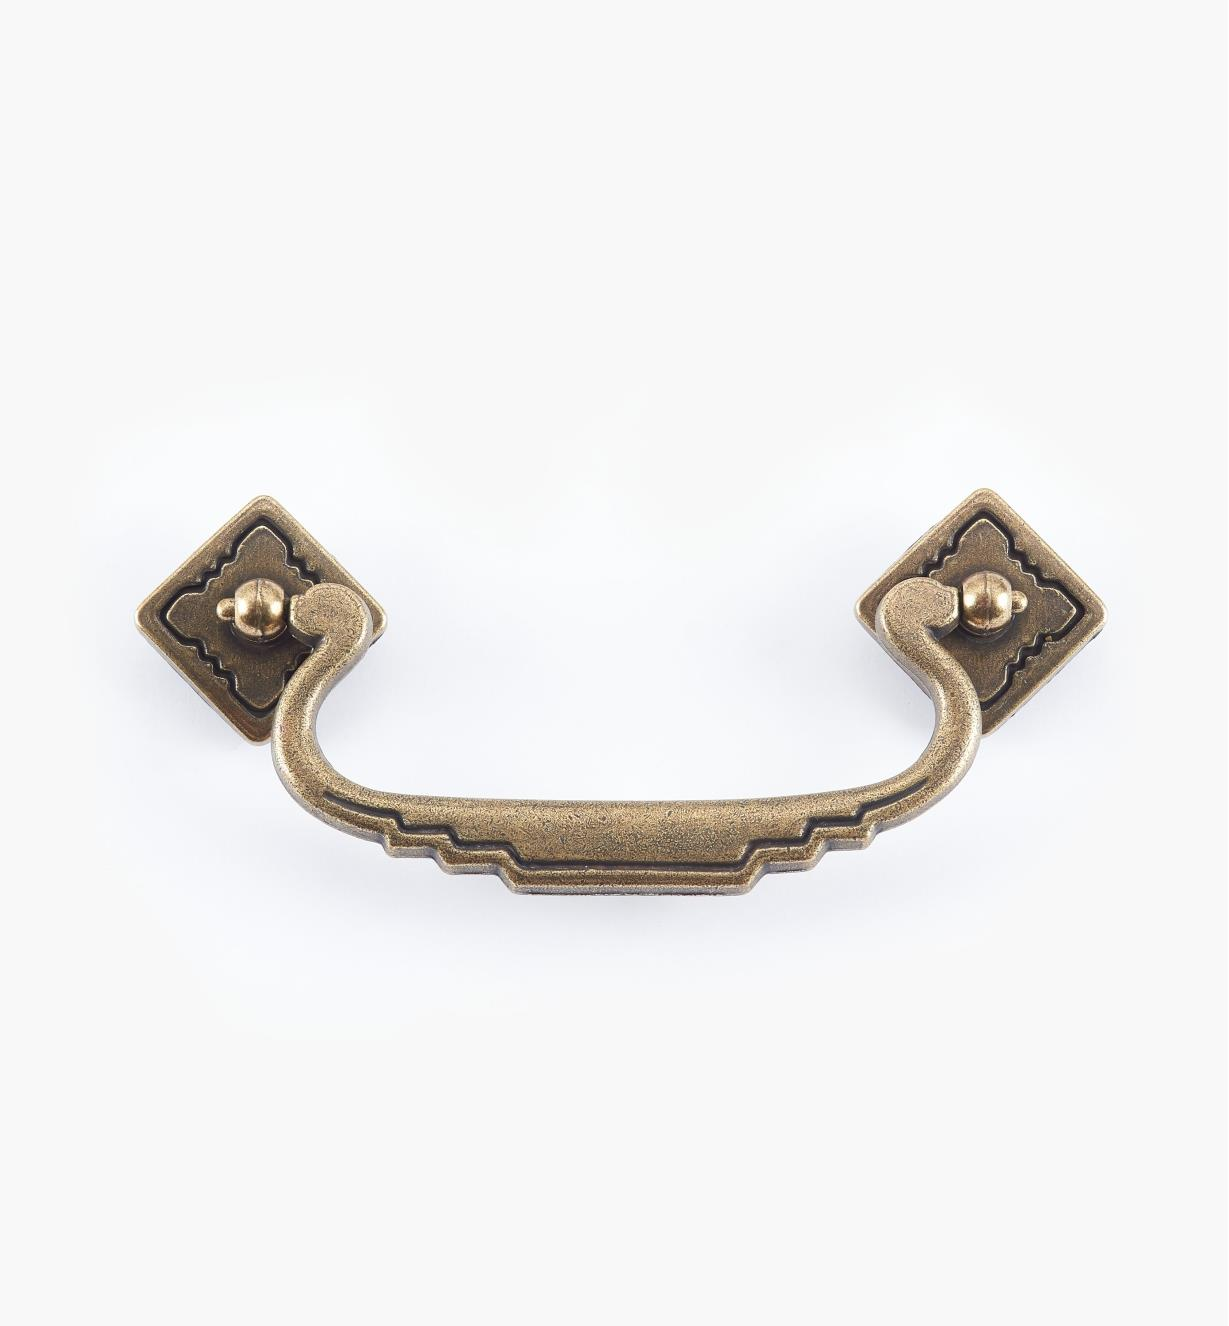 "01G6110 - 4 1/4"" Brass Bail Pull, ""Southwest"" Hardware"